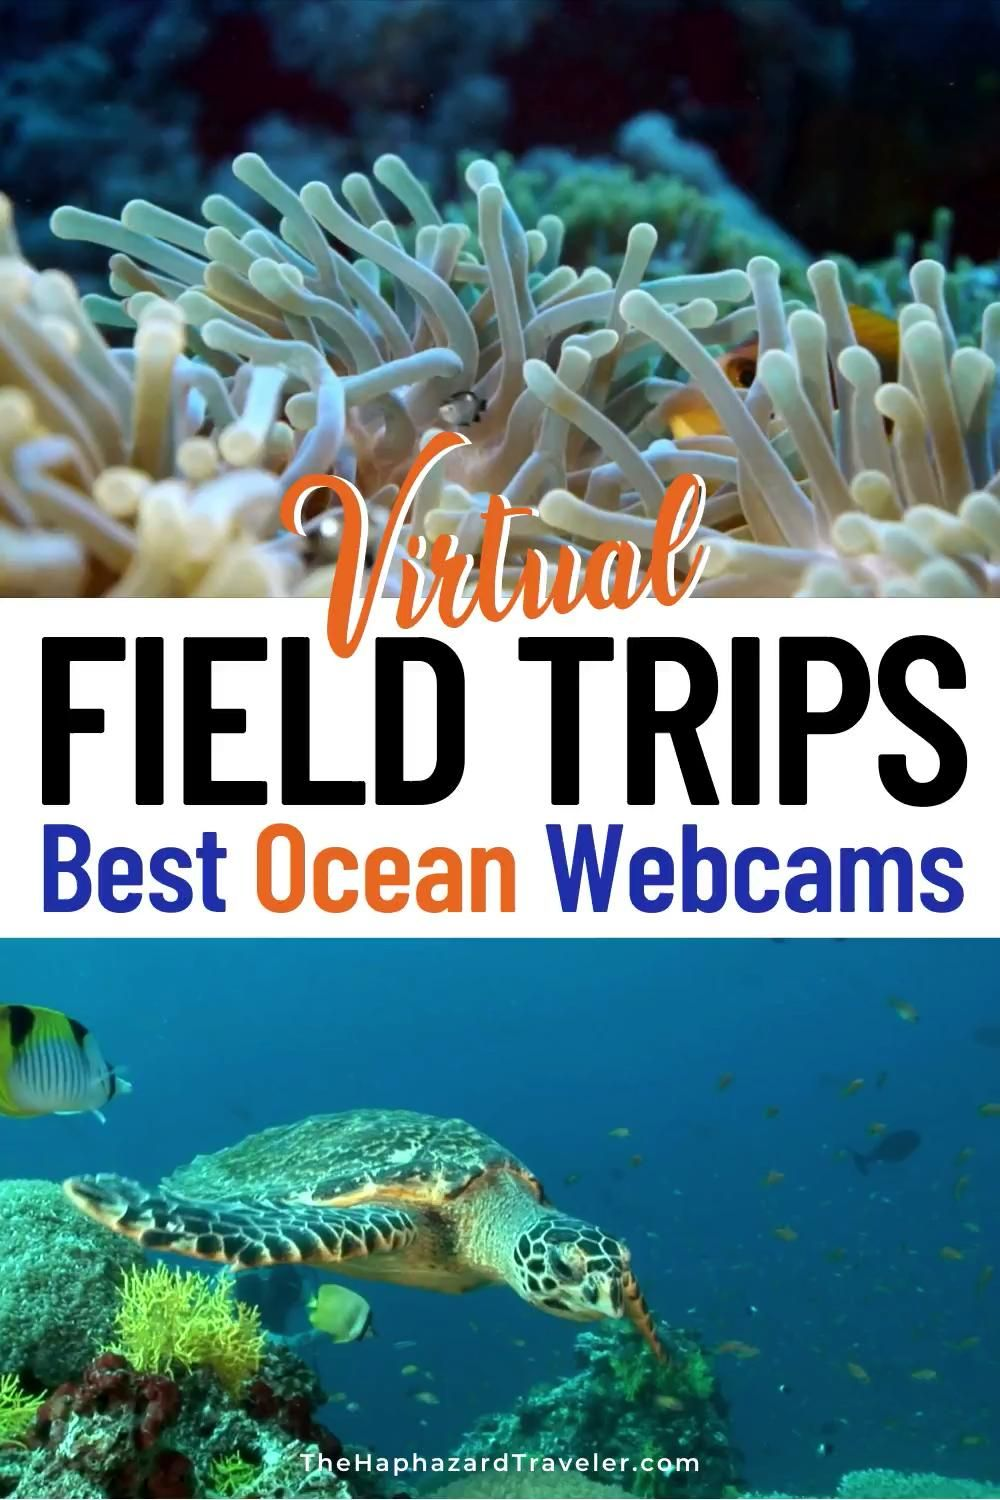 Looking for virtual field trips and ways to keep young minds busy? Take an aquarium virtual field trip with ocean live feeds & webcams! These are the best ocean virtual field trips for kids, homeschooling, and teacher resources. See jellyfish & sea otters at Monterey Bay Aquarium, penguins at Aquarium of the Pacific, manatees & corals in Florida, a kelp forest in California, Beluga whales in Manitoba, whale sharks in the Georgia Aquarium & more! #onlinelearning #homeschool #homeschoolactivities